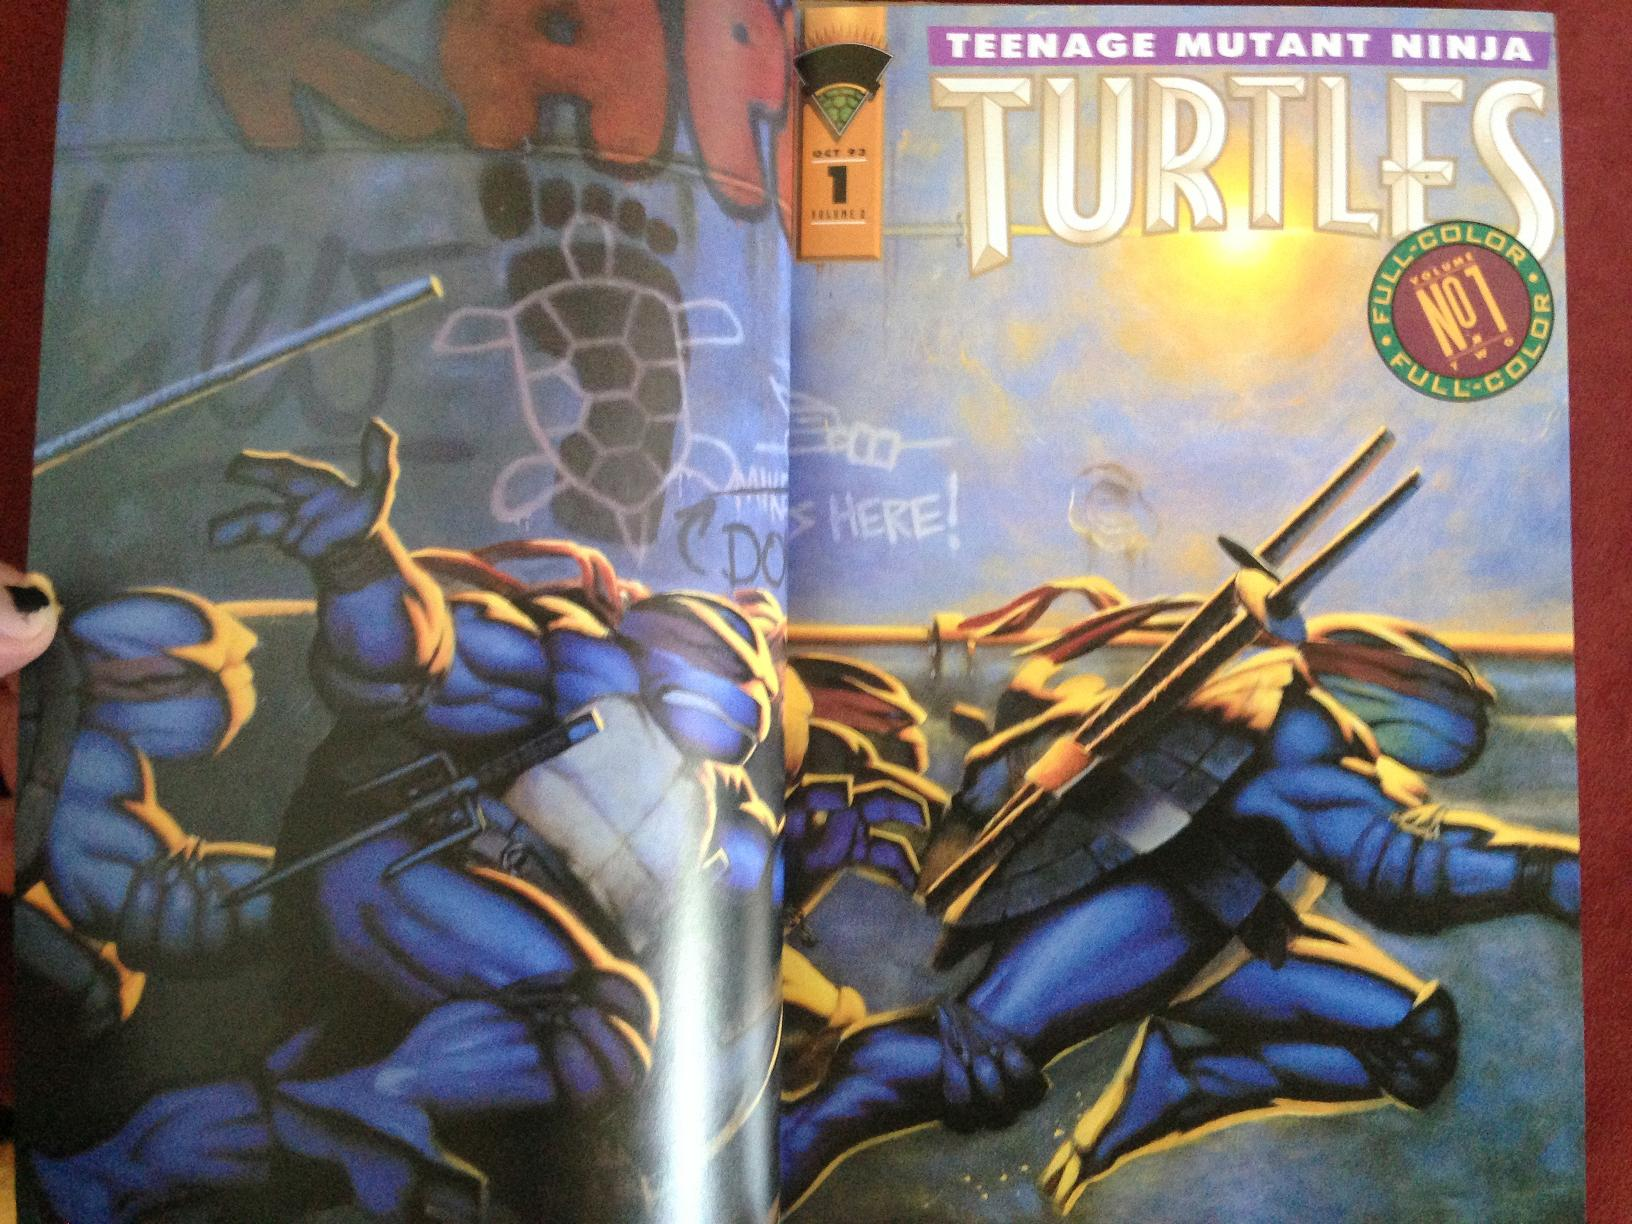 teenage mutant ninja turtles classics vol 8 (5)